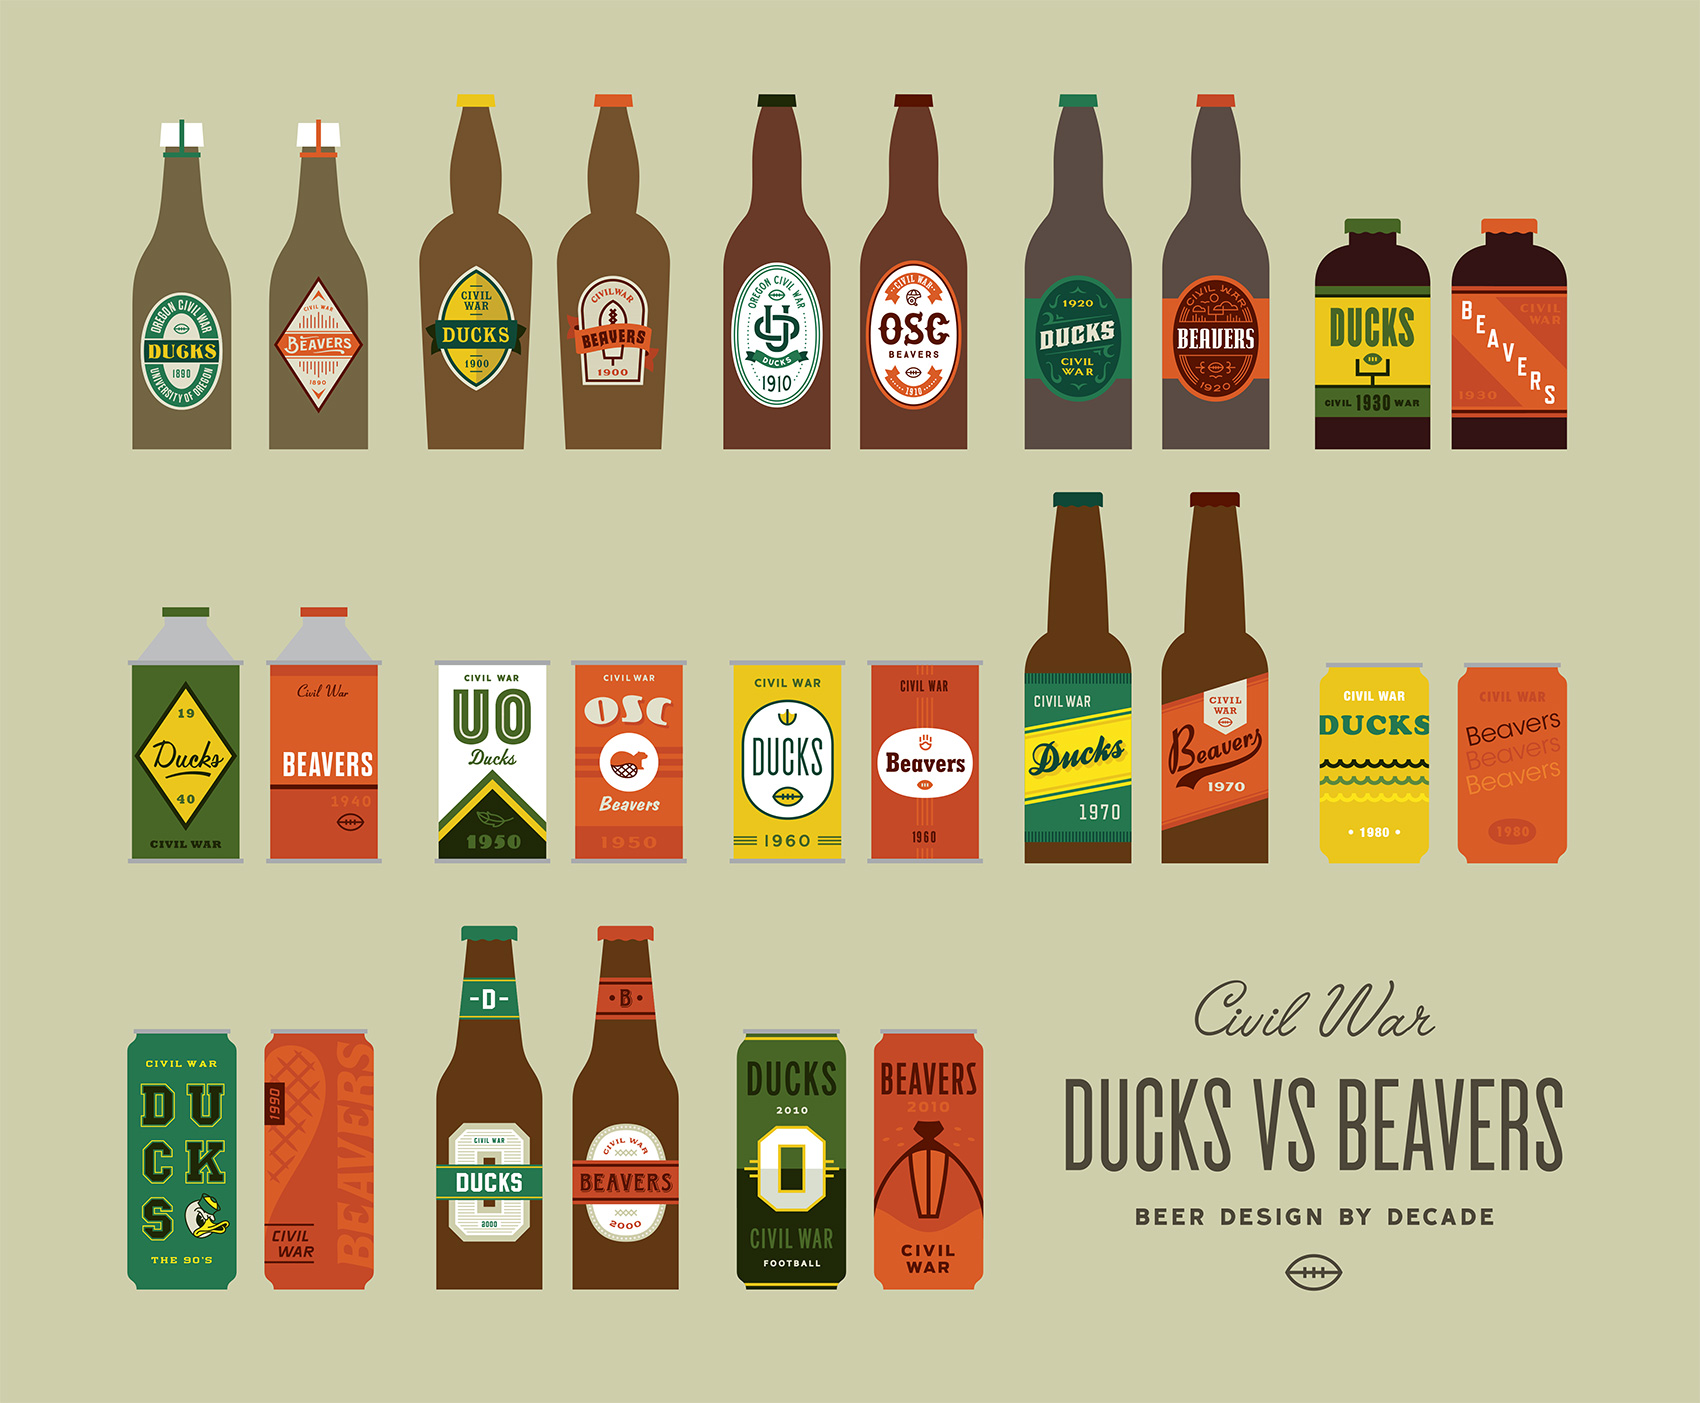 Ducks VS Beavers civil war beer design by decade